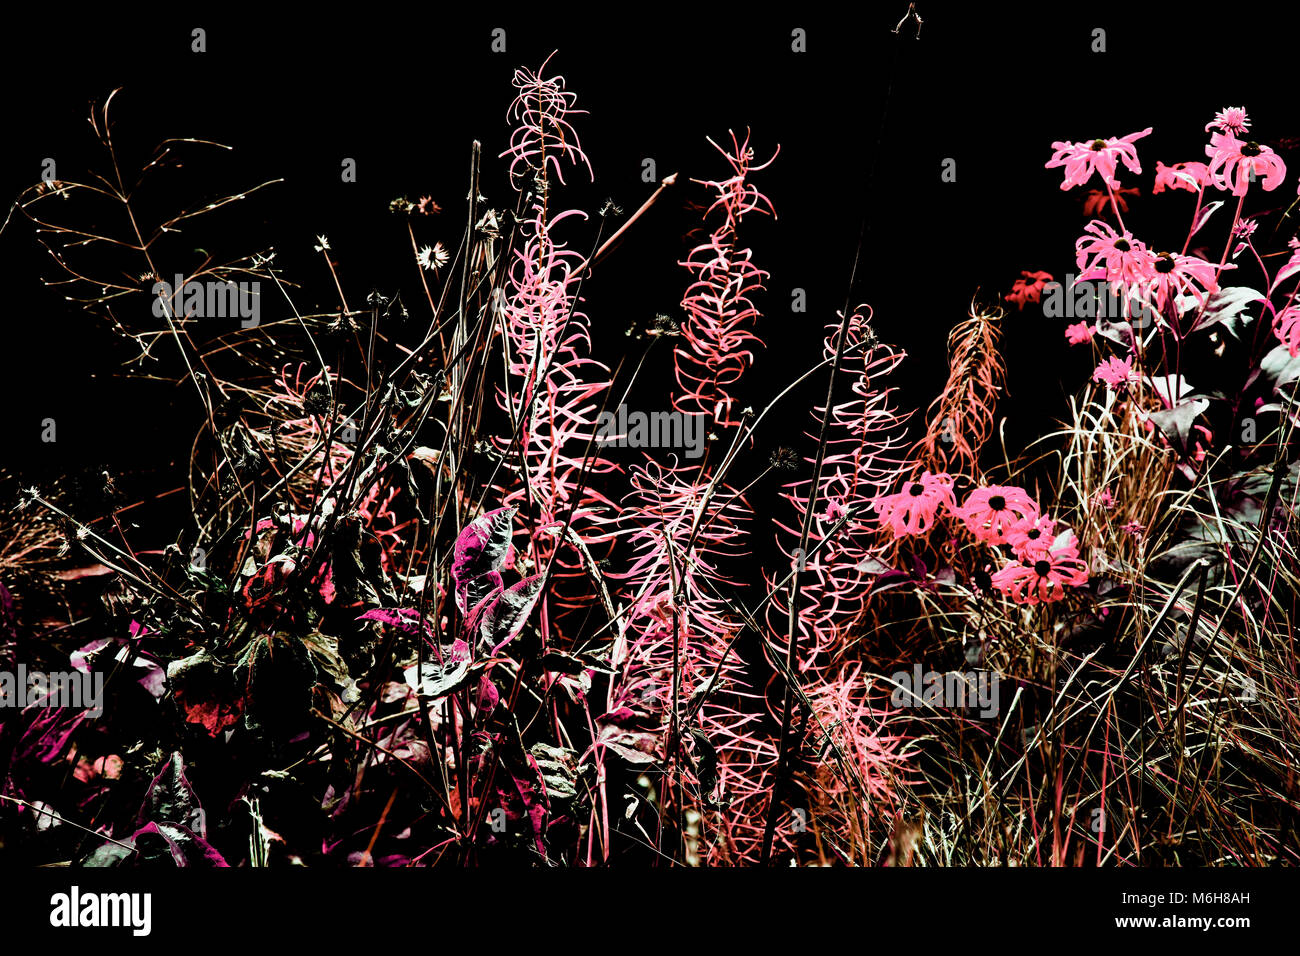 Beautiful Exotic And Wild Flowers And Plants Shot At Night In